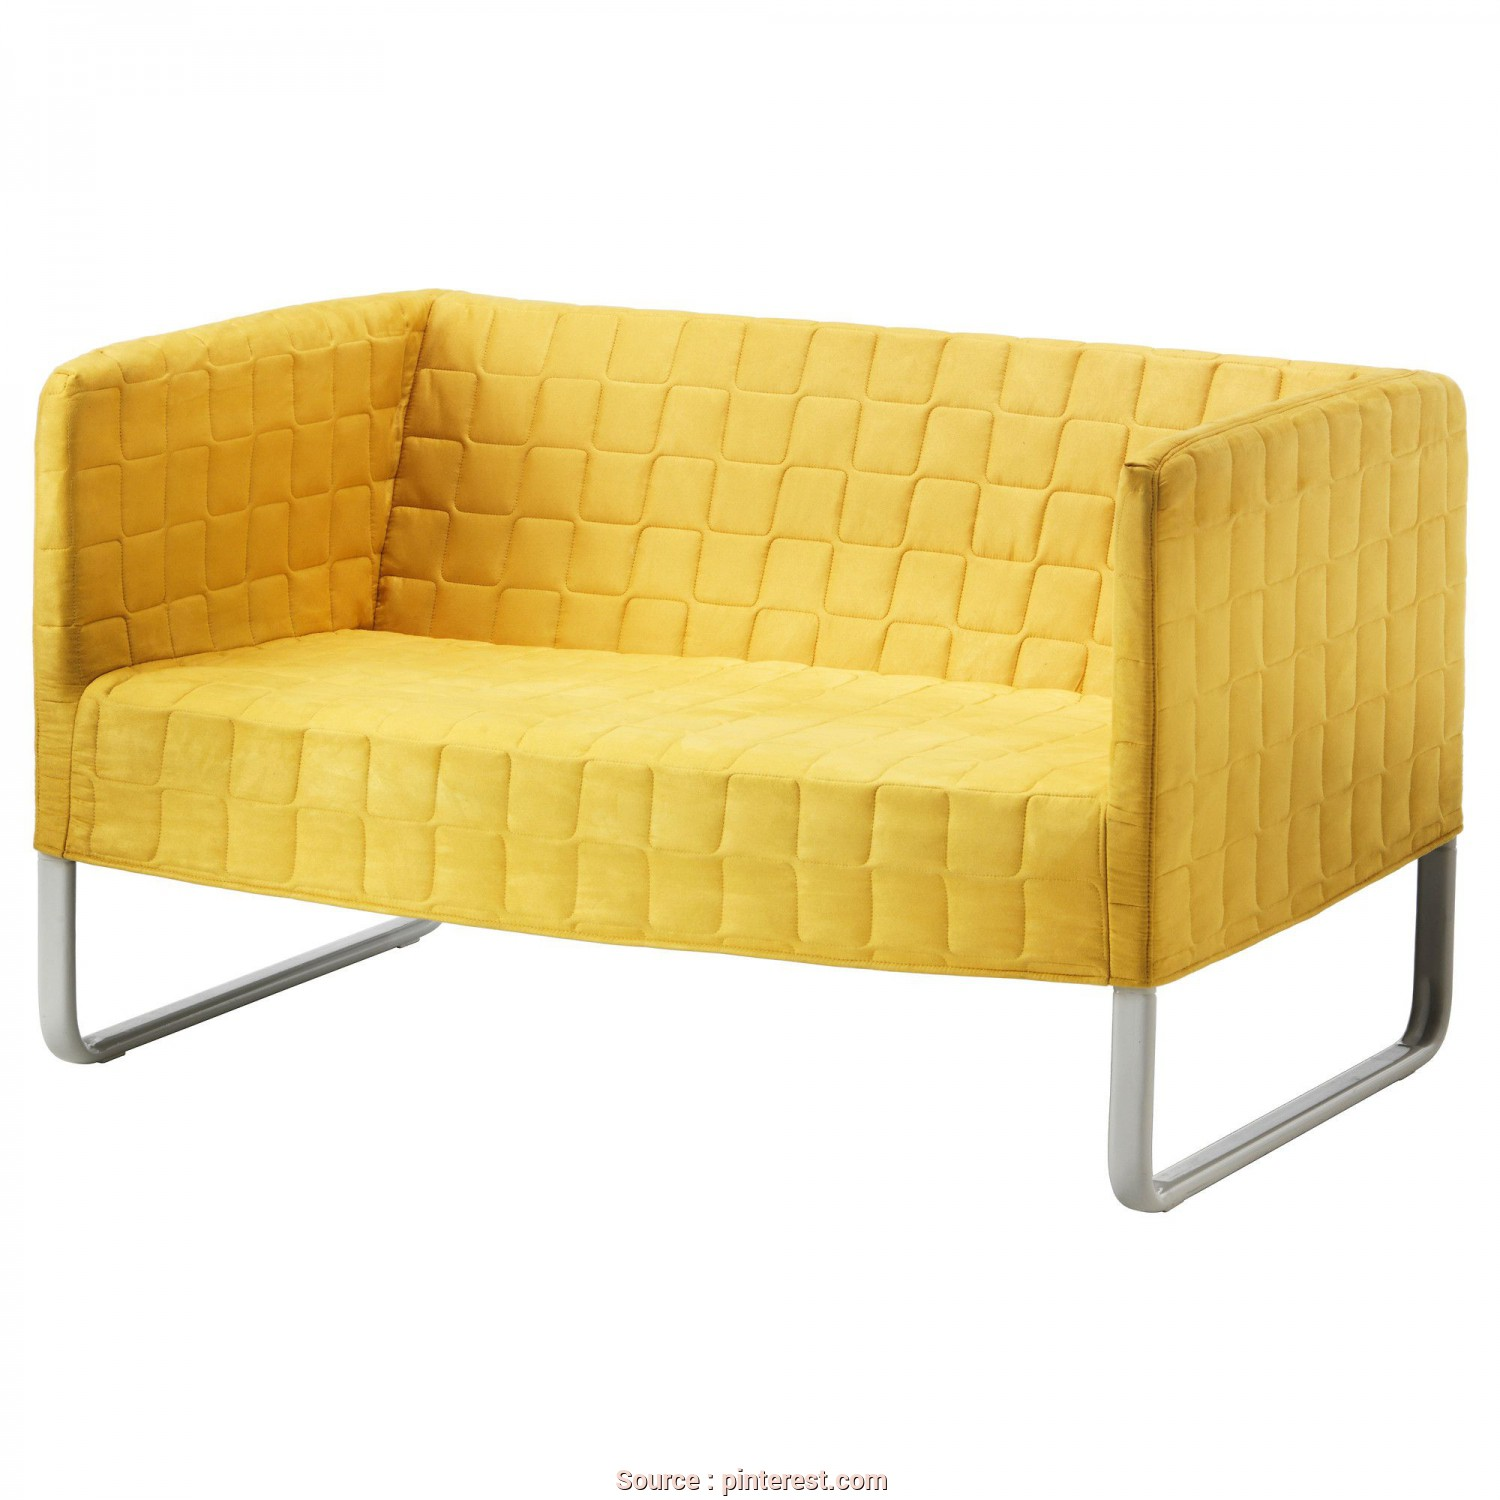 Ikea Klippan Gelb, Esotico KNOPPARP Loveseat, Bright Yellow, IKEA, Cindy